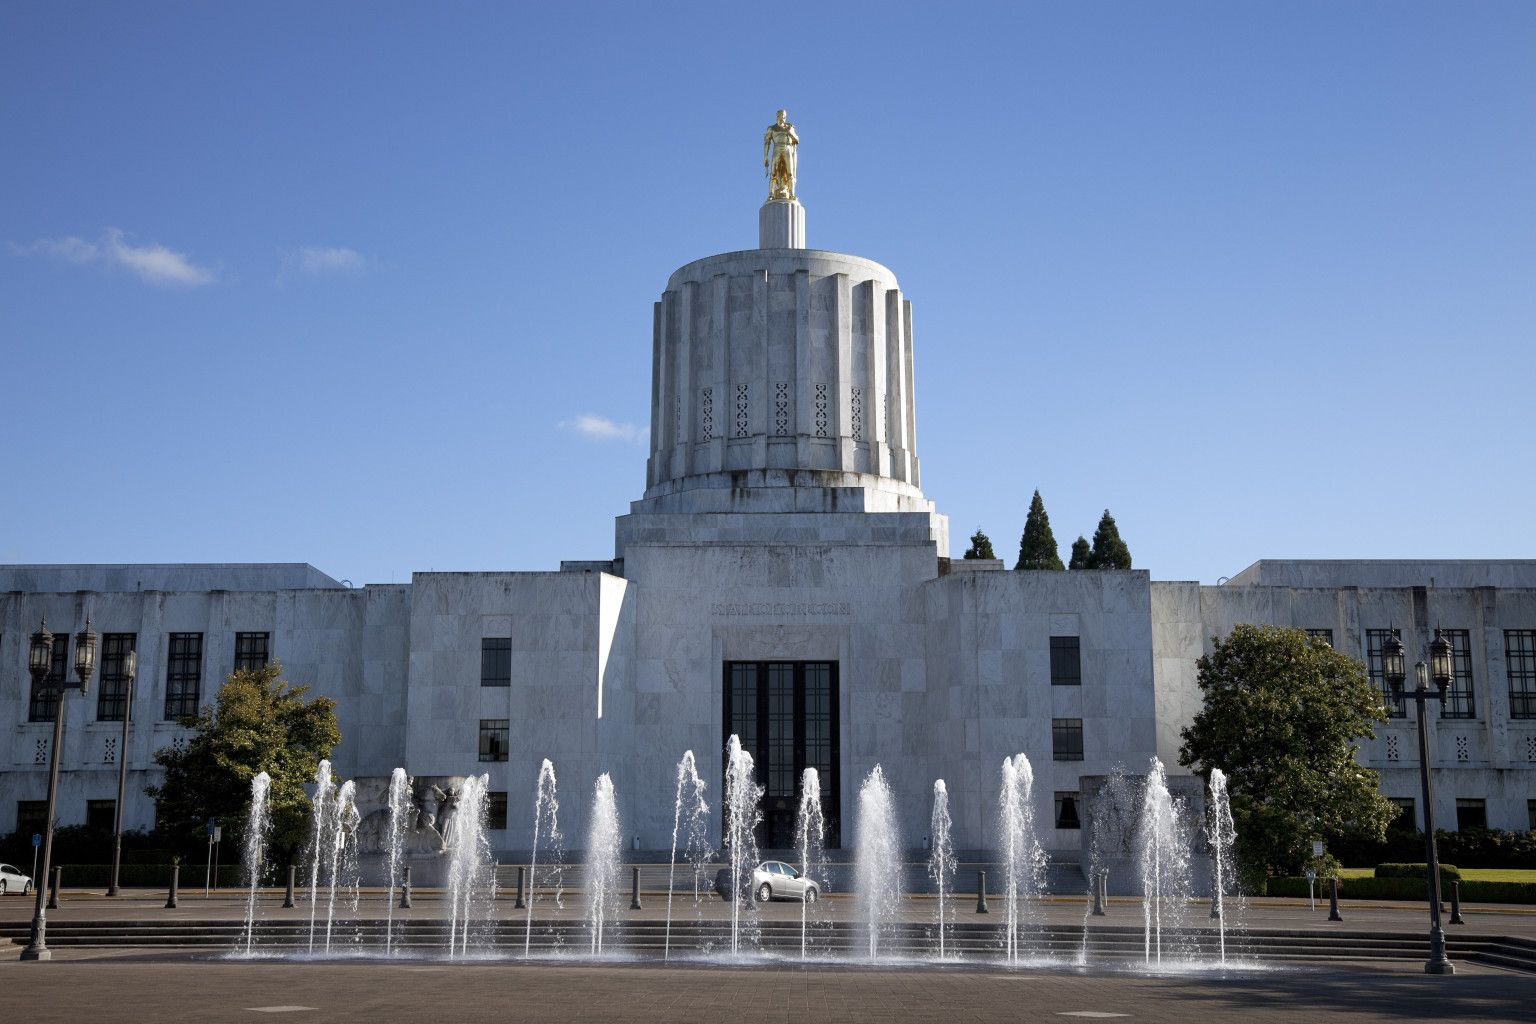 08/12/13 Art Robinson, a vocal skeptic of man-made climate change who unsuccessfully ran against Rep. Peter DeFazio (D-Ore.) in 2010 and 2012, was elected Saturday as the Oregon Republican Party's new chairman. The Oregonian reports: